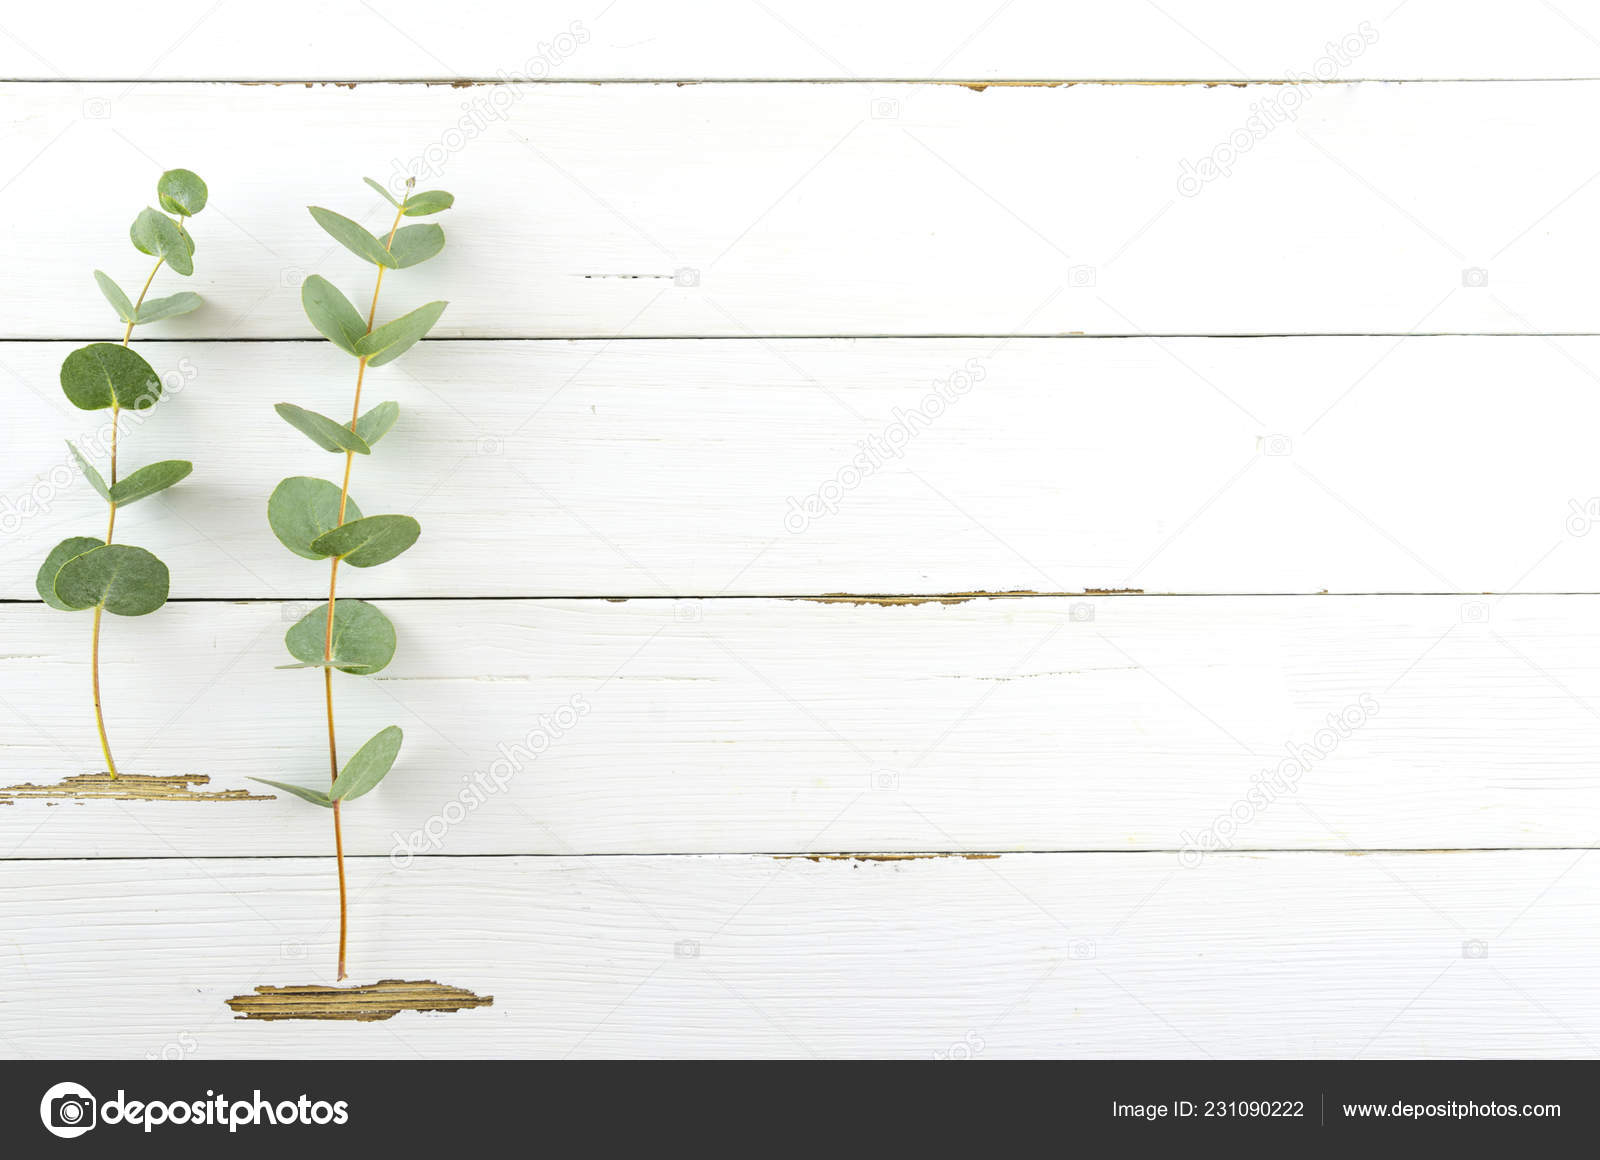 Spring plant over white rustic wooden background  Decorative